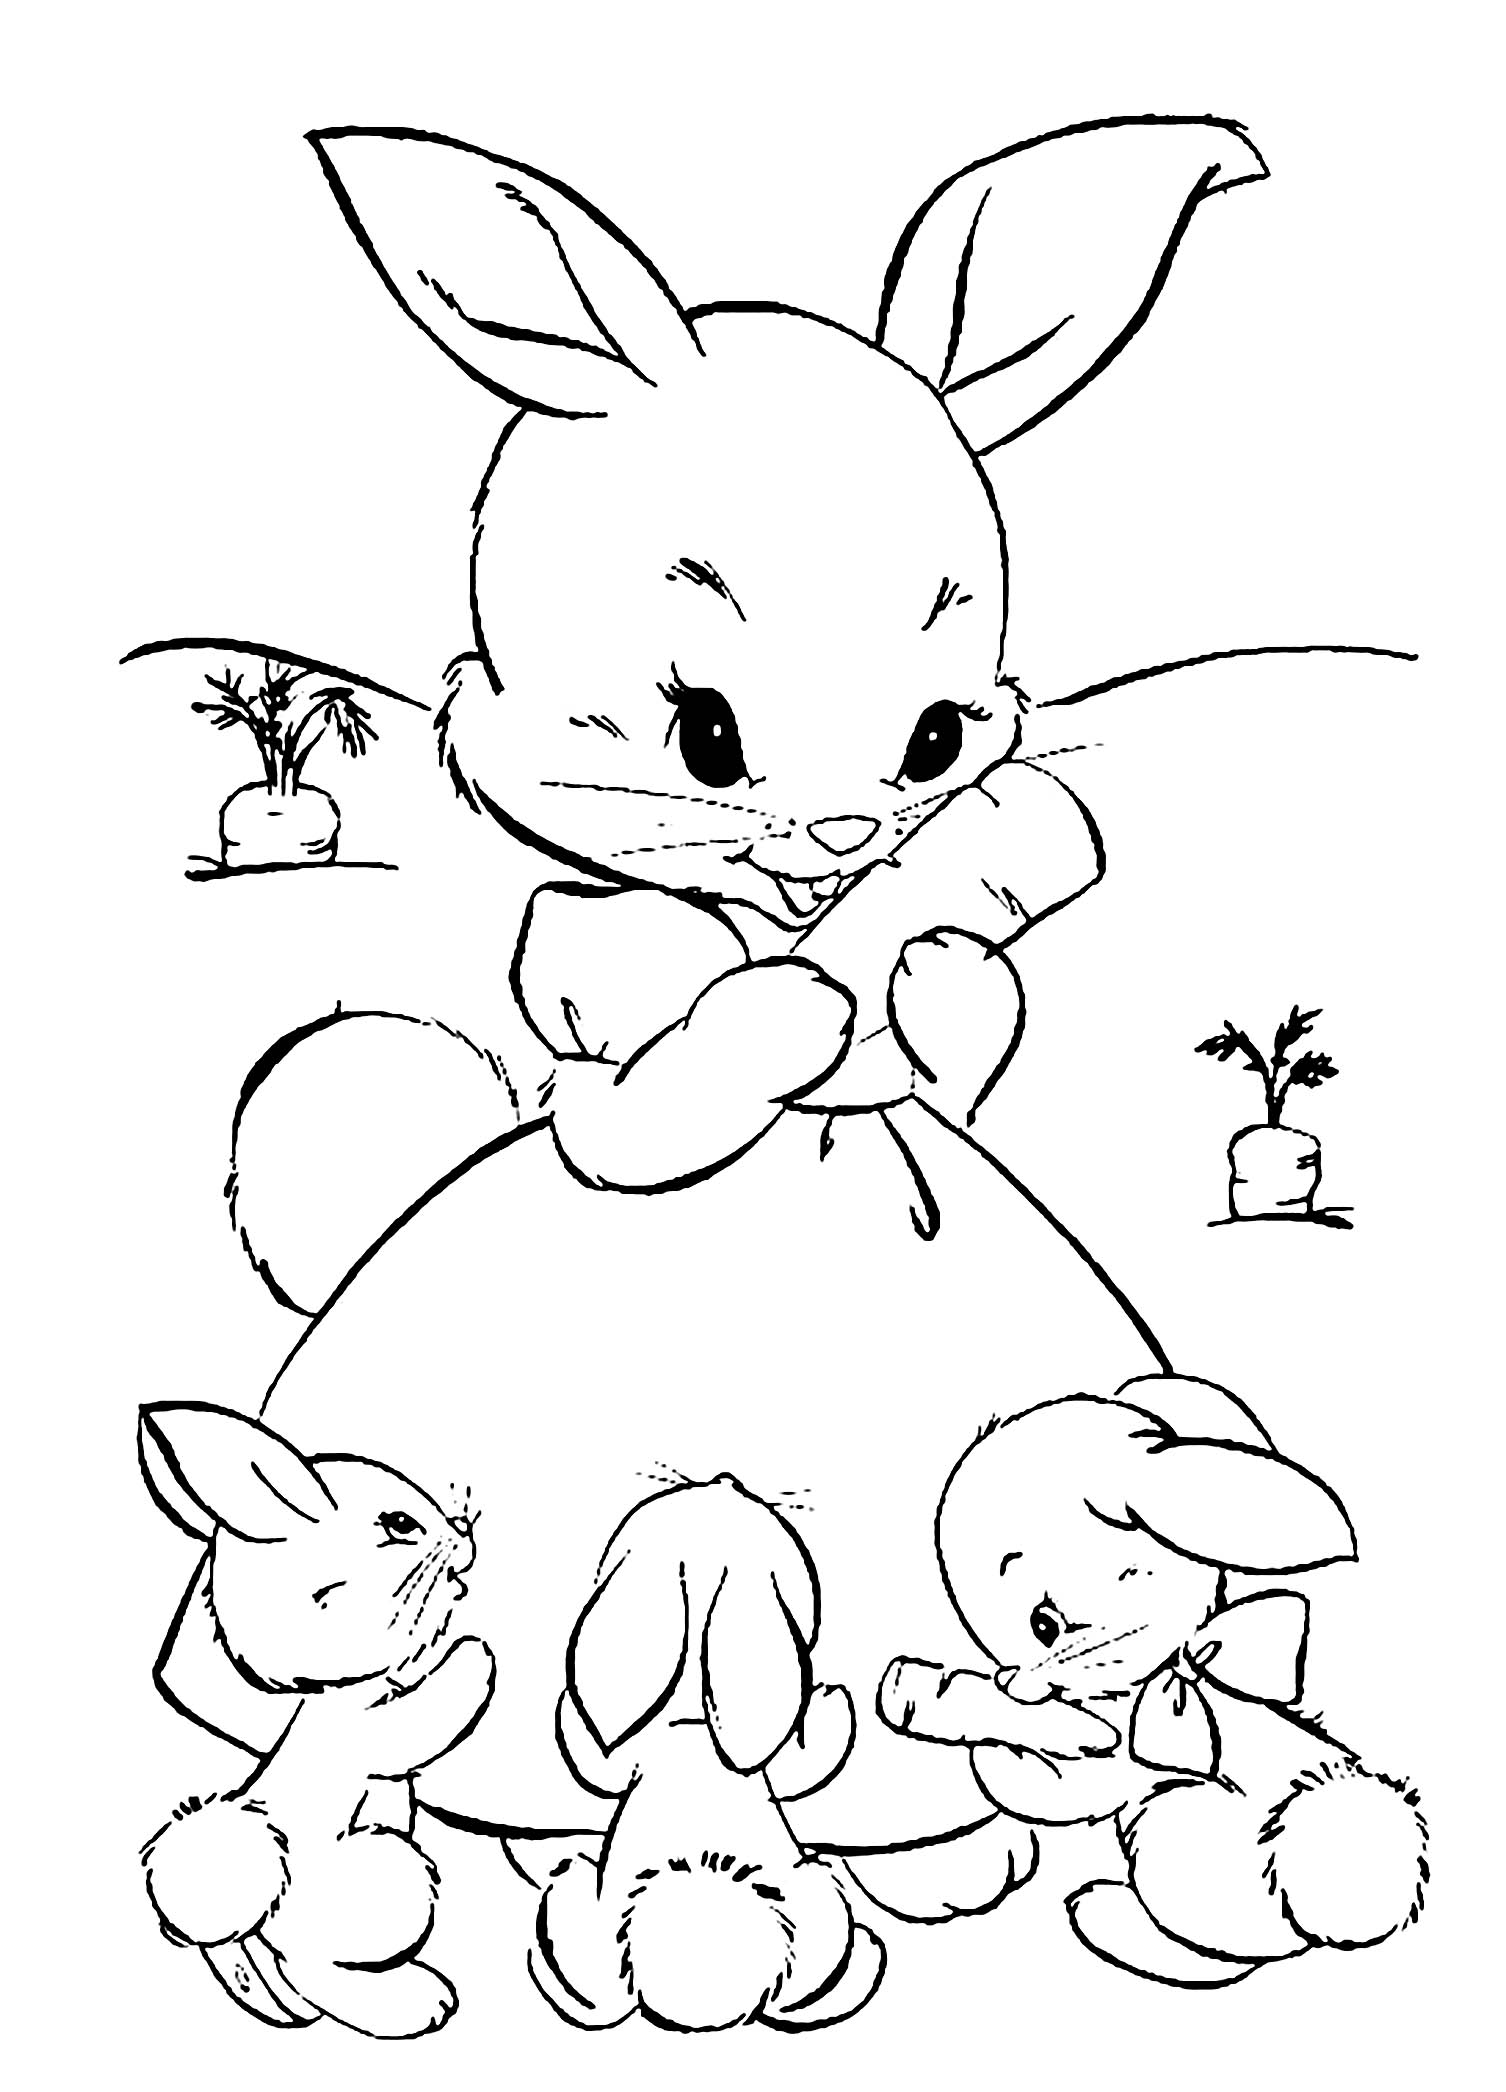 rabbit pictures to colour and print rabbit free to color for children rabbit kids coloring pages colour and to pictures print rabbit